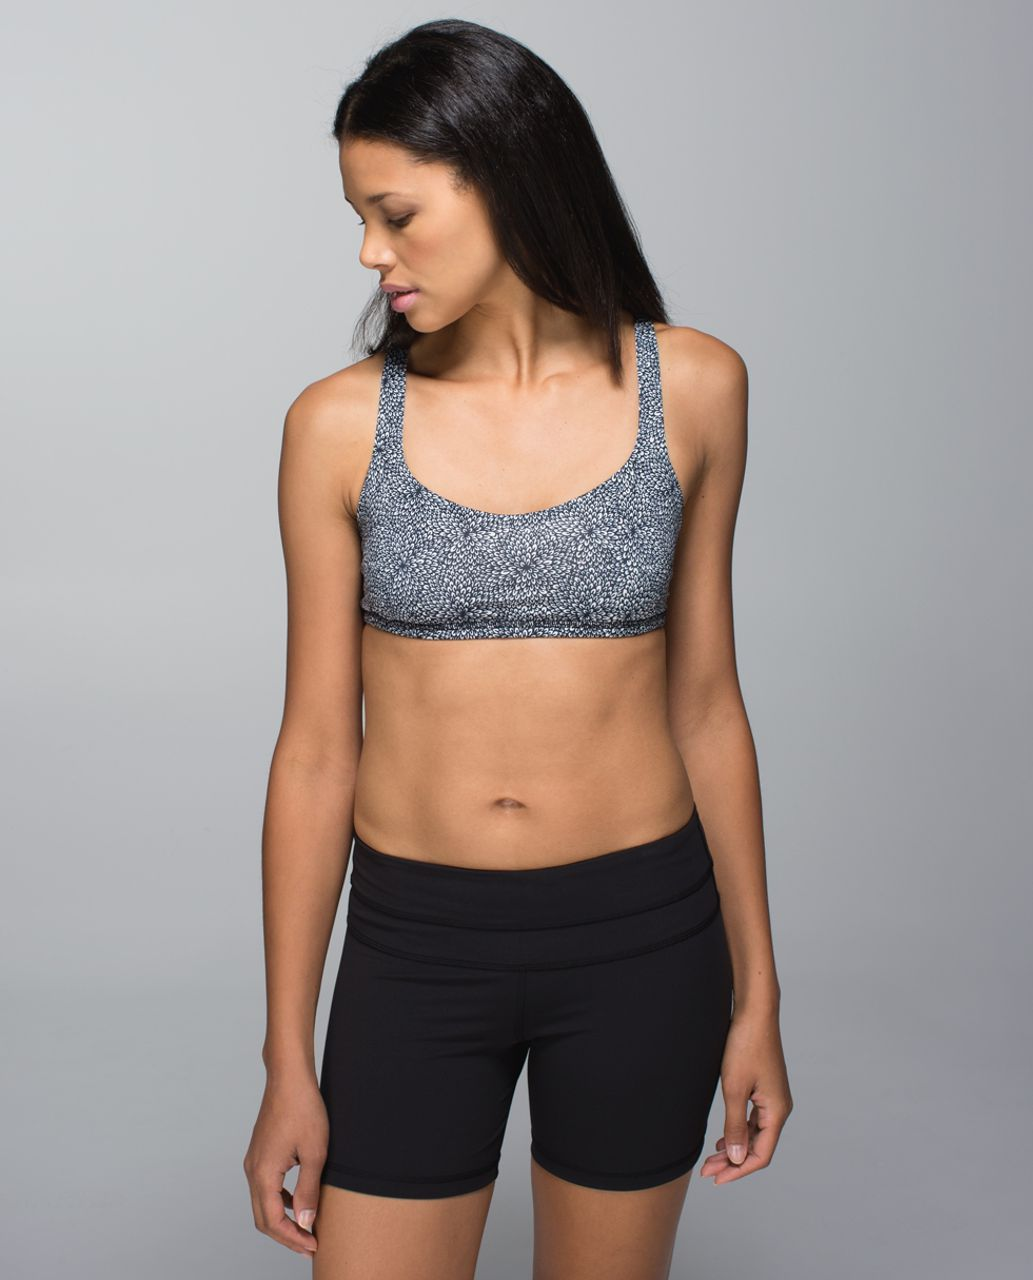 Lululemon Free To Be Bra - Plush Petal Black Ghost